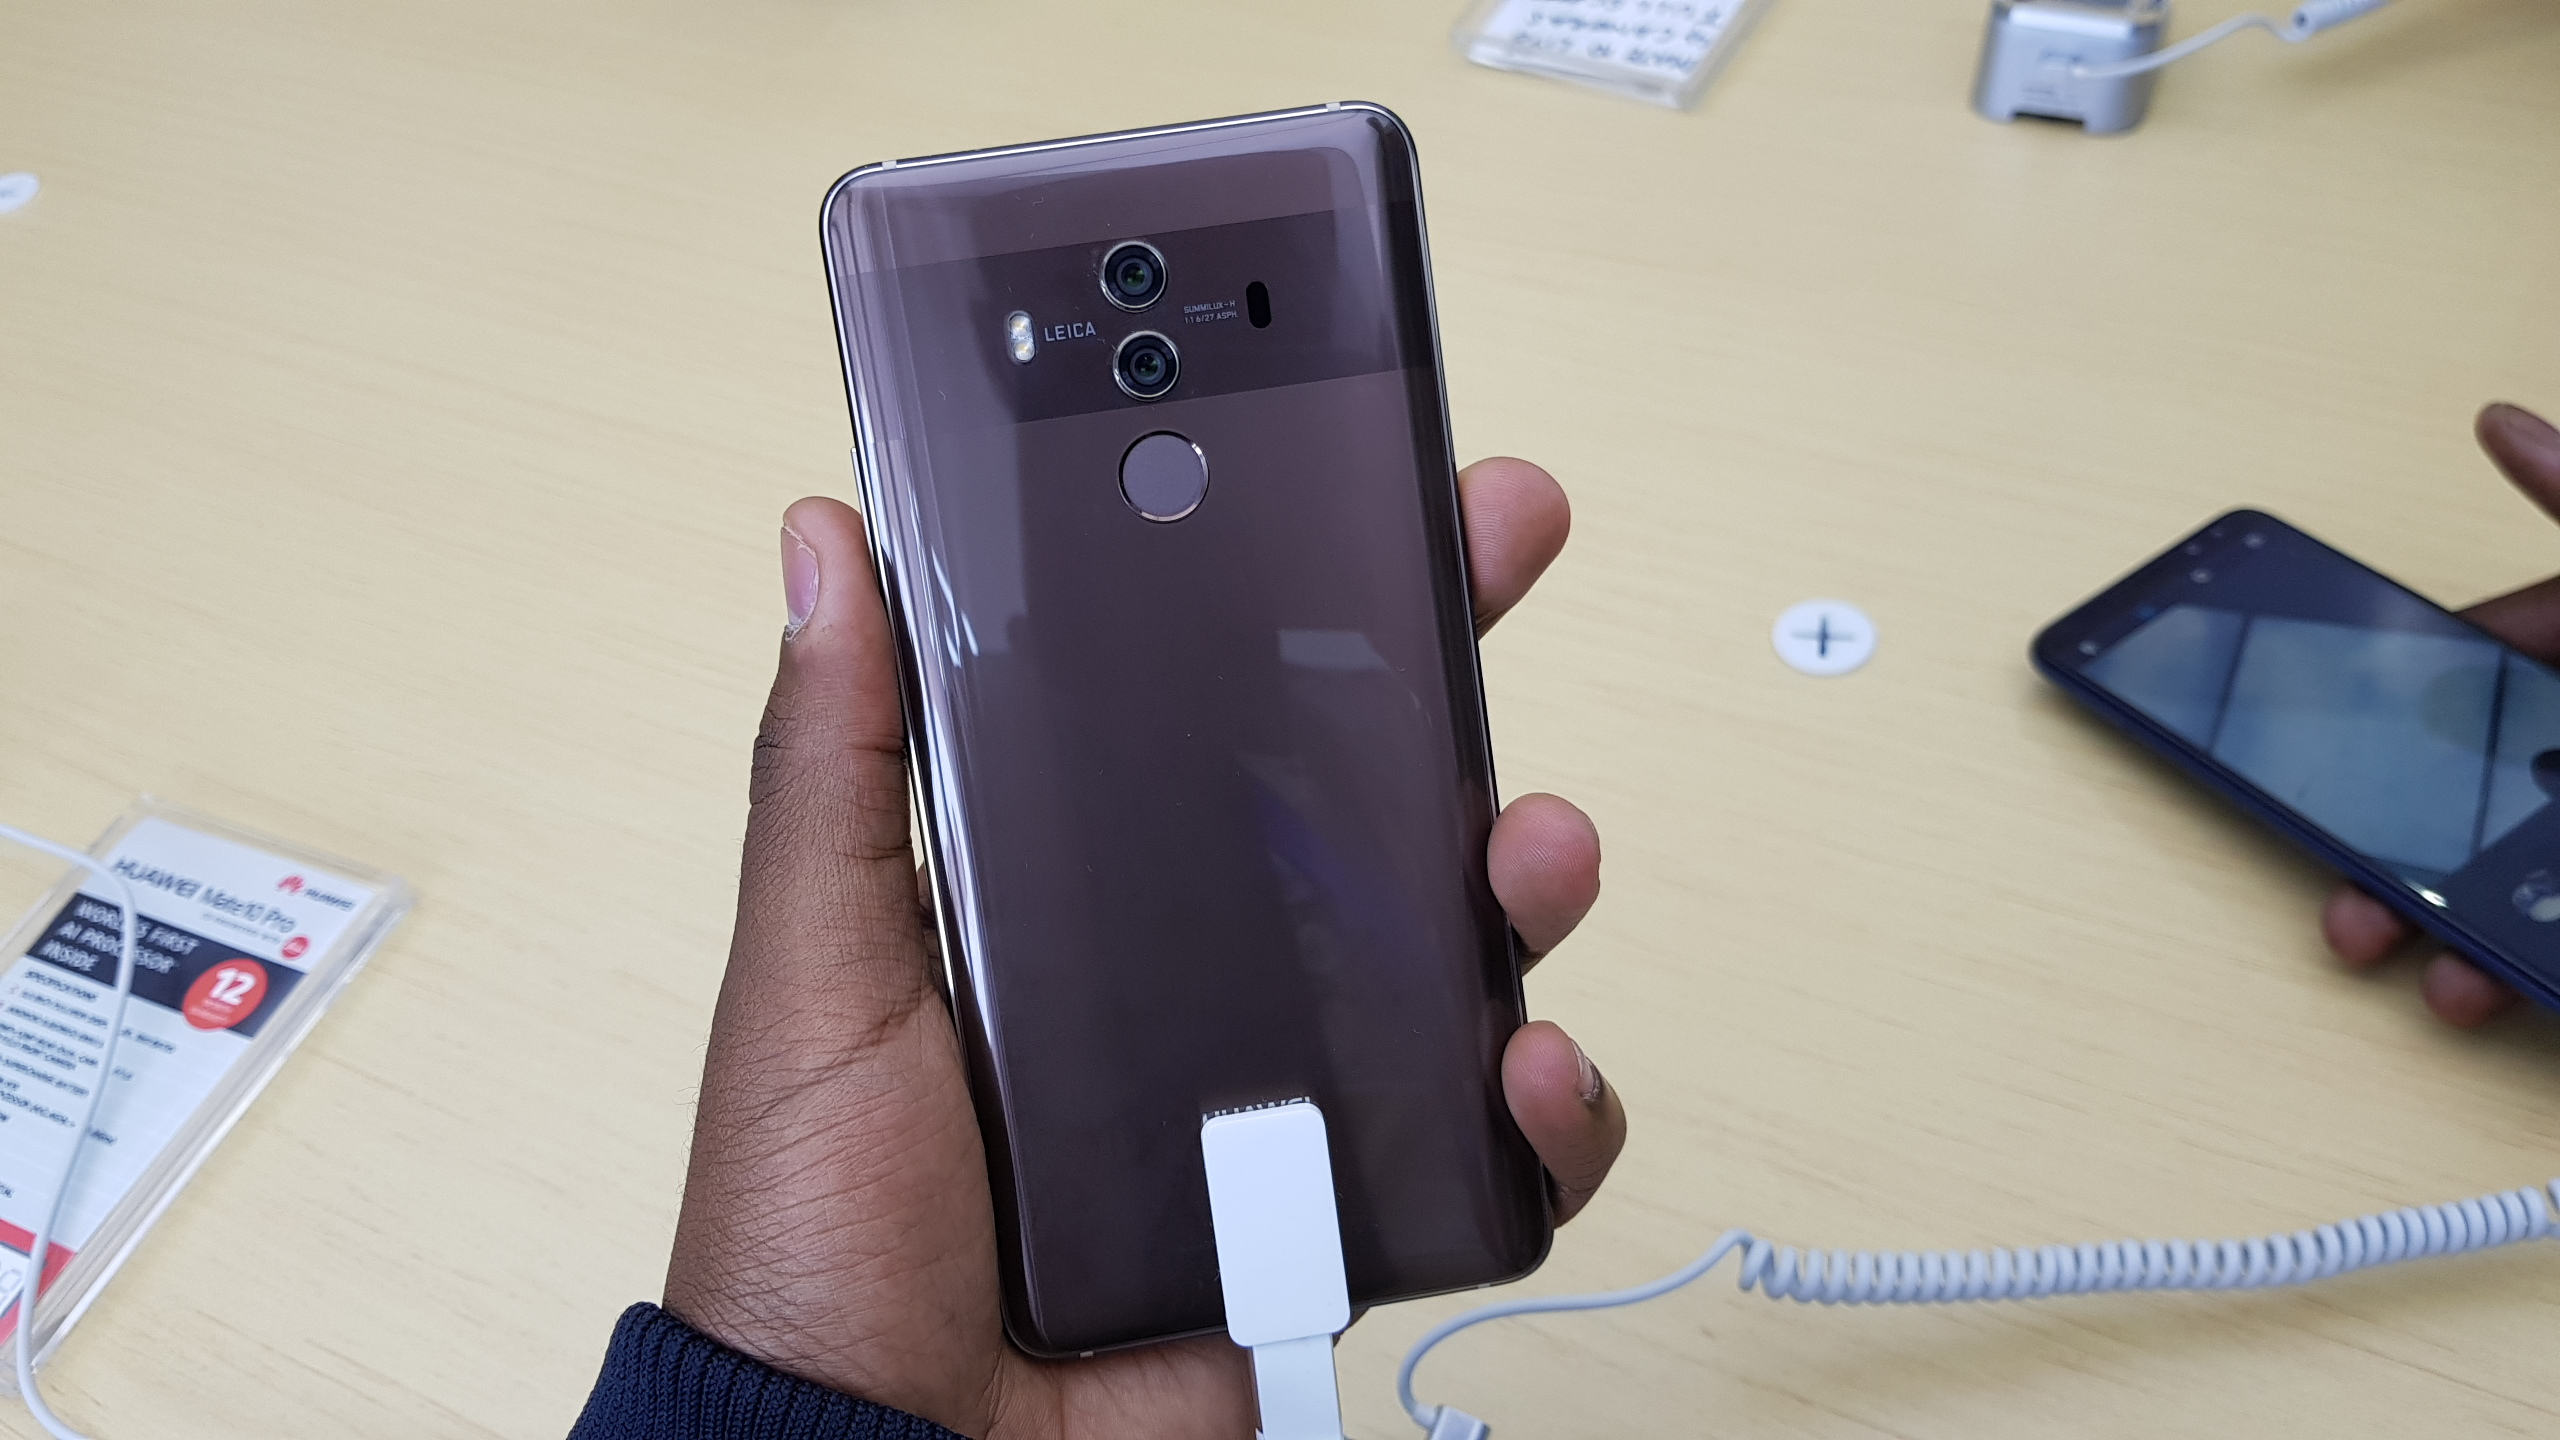 Huawei Mate 10 Pro Specifications and Price in Kenya